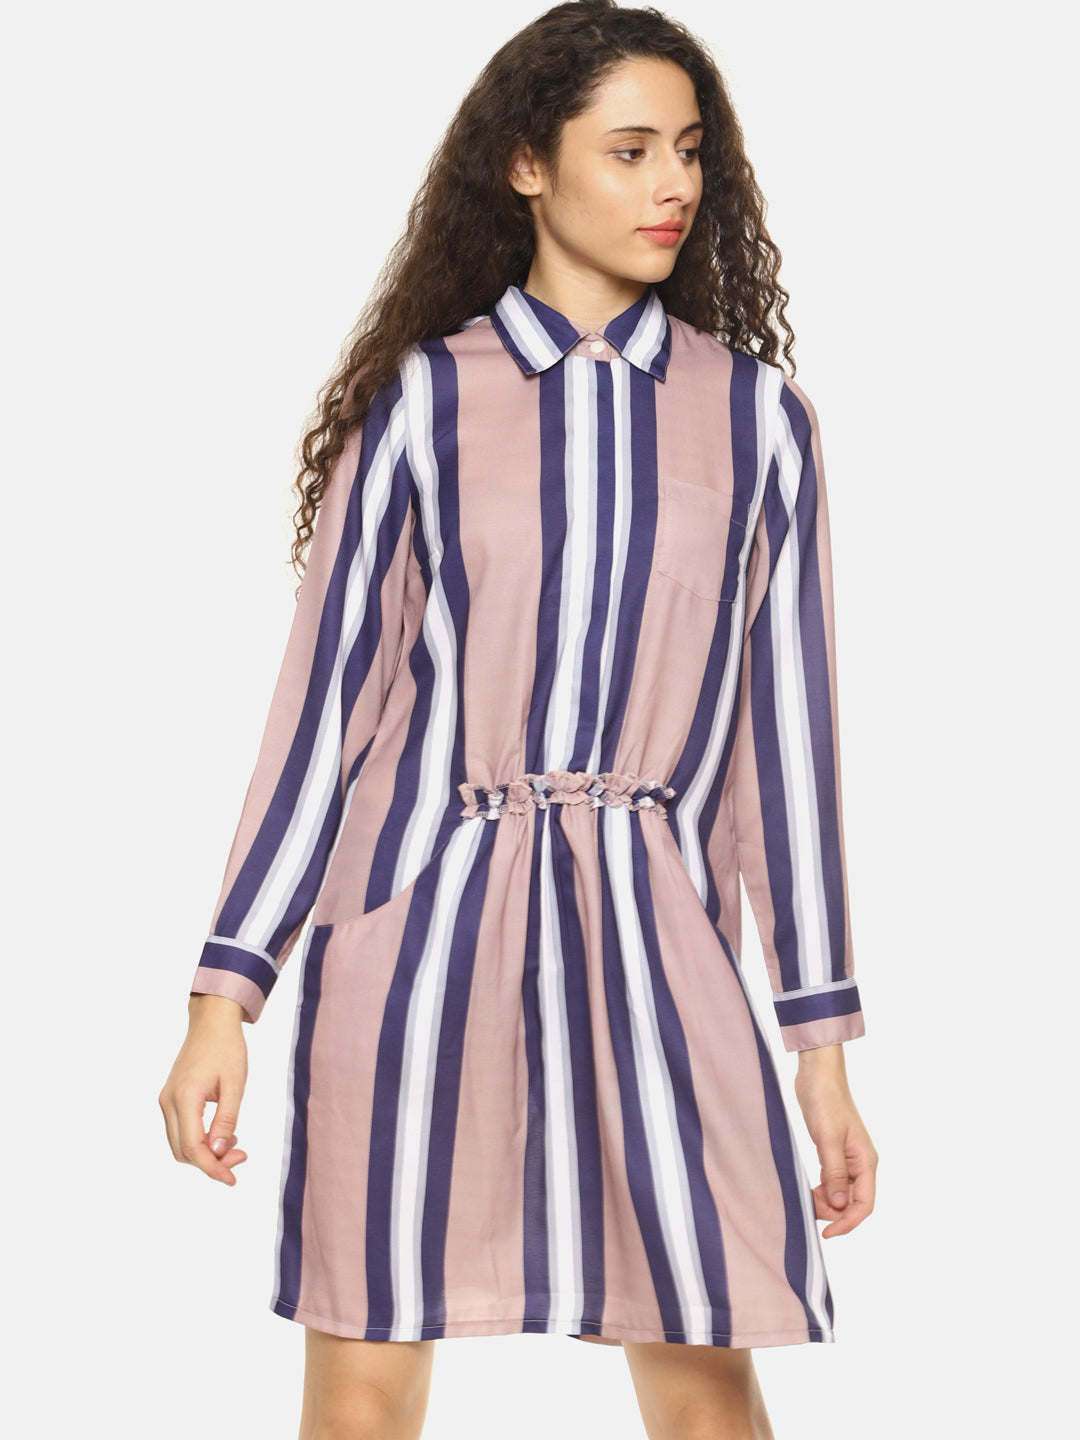 SAHORA Women striped dress